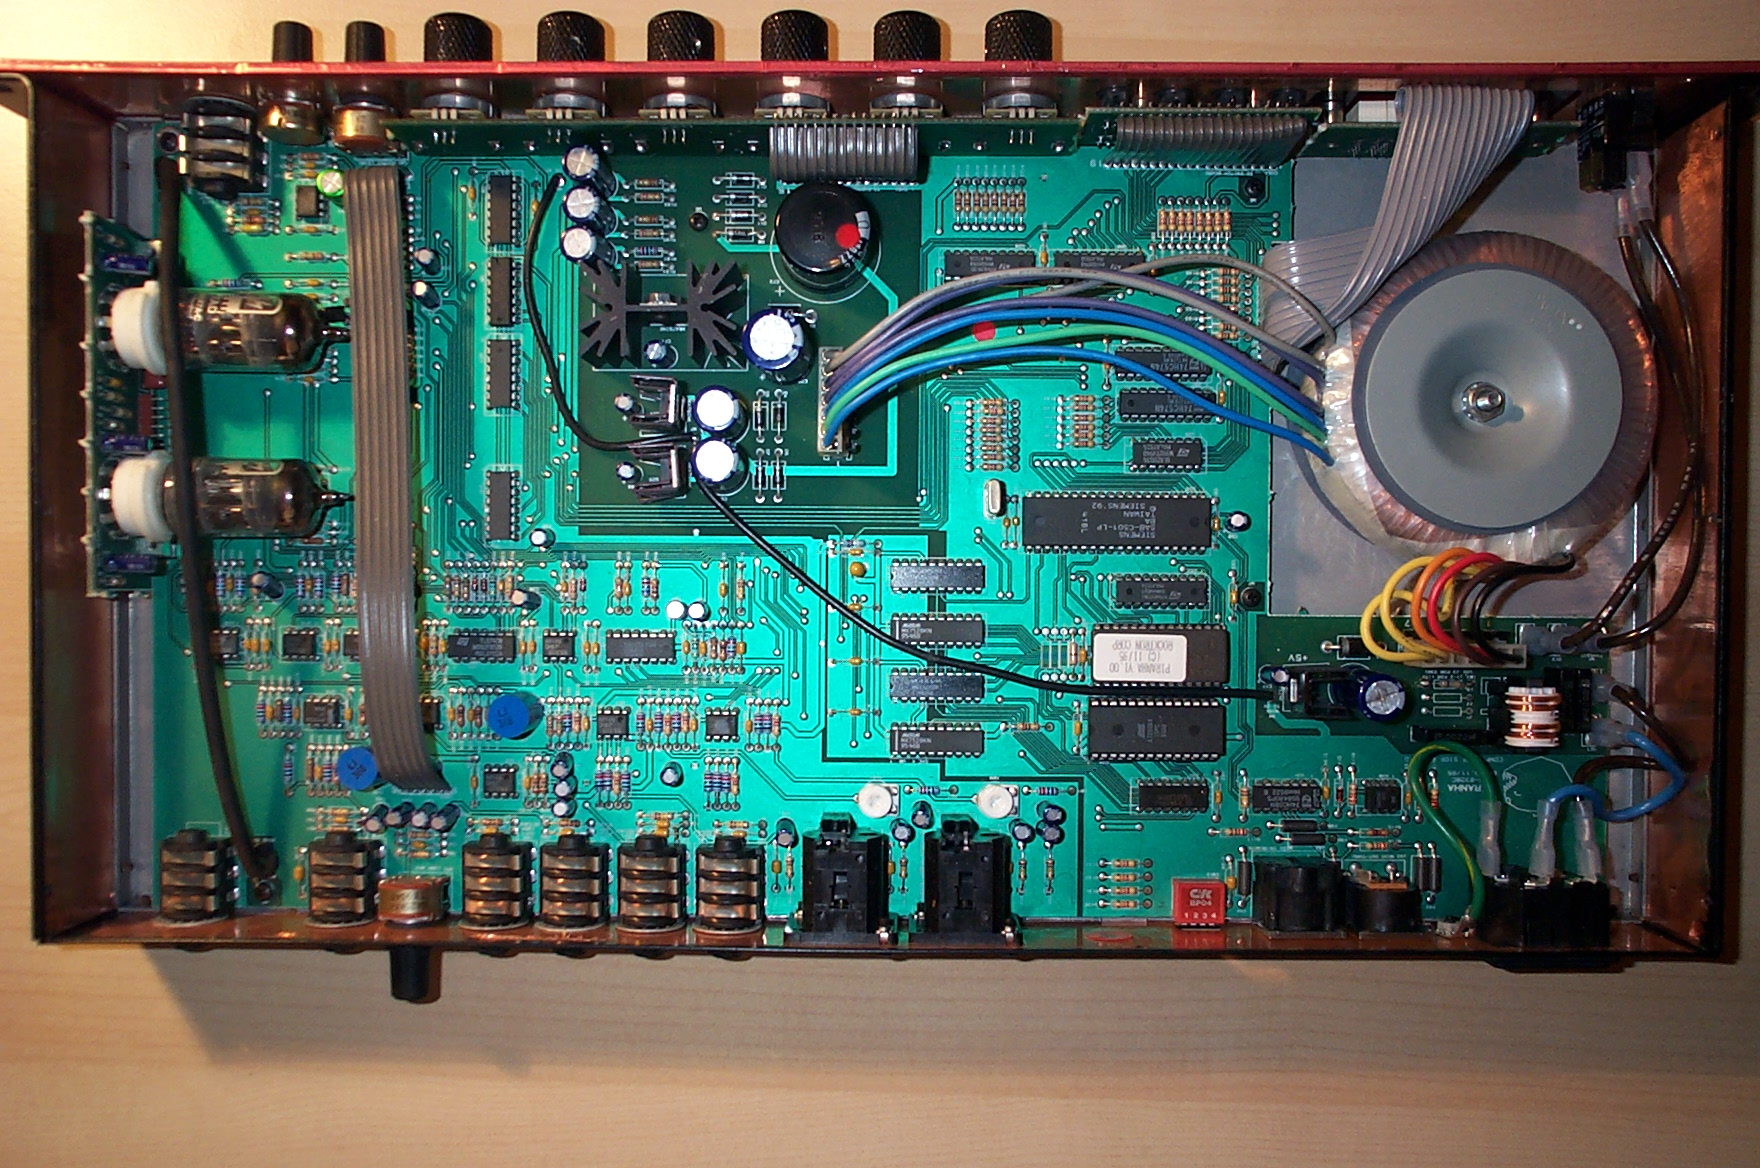 File:Rocktron Piranha guitar preamp - inside (2007-03-08 23 13 52 by